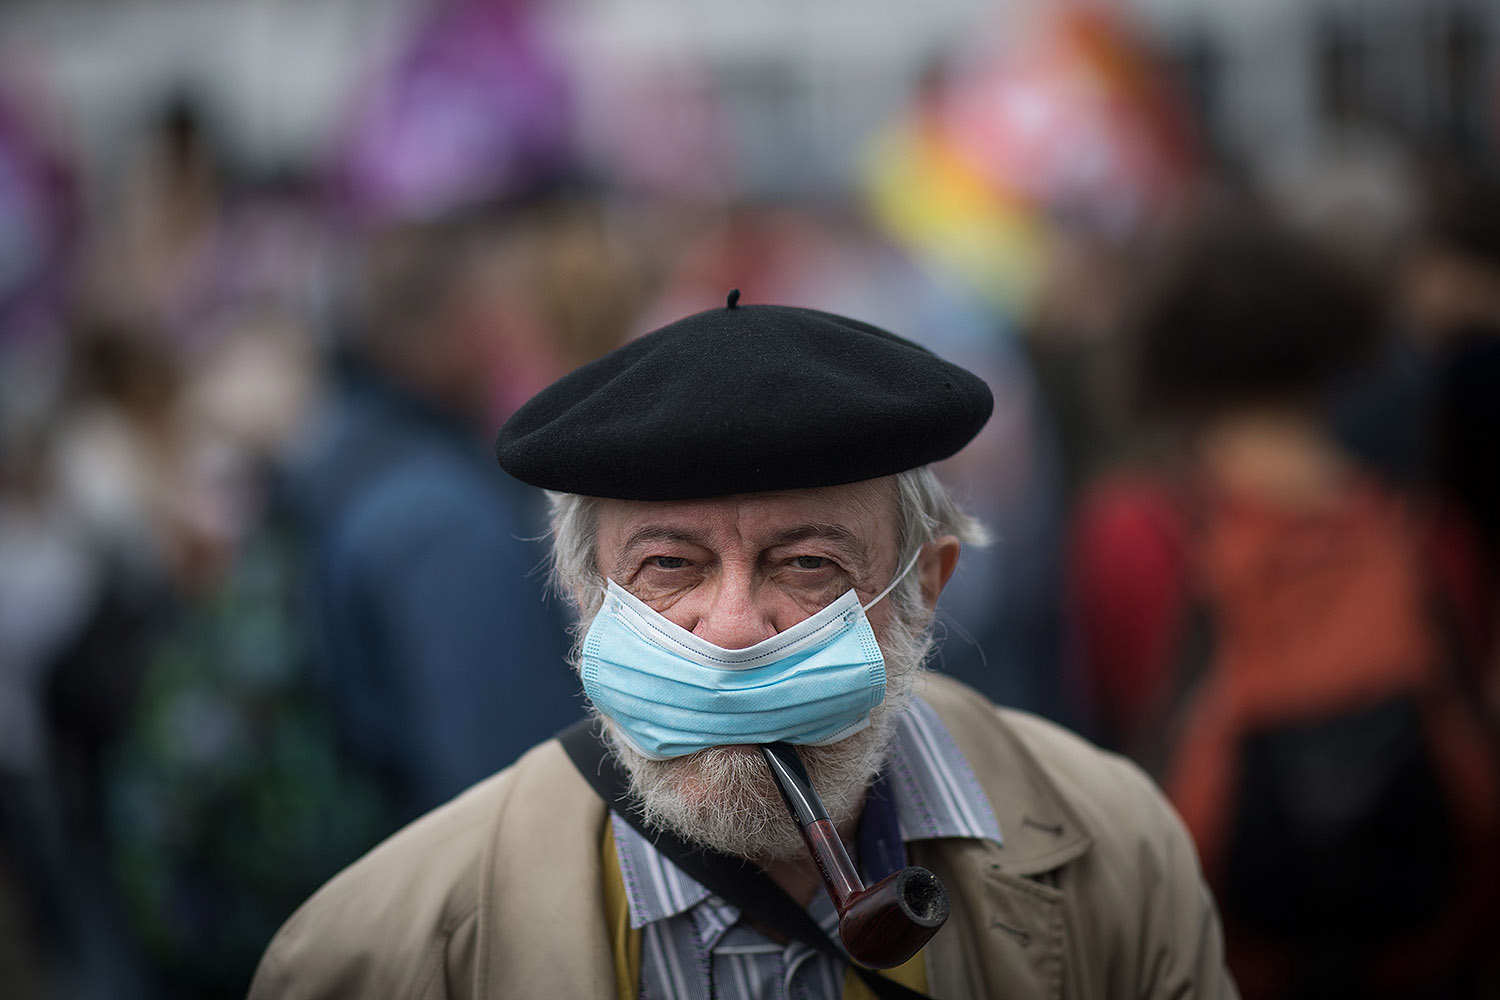 A man smokes a pipe while wearing a face mask during a demonstration in Nantes, France, on June 30 as part of a nationwide day of protests to demand better working conditions for health care workers. LOIC VENANCE/AFP via Getty Images